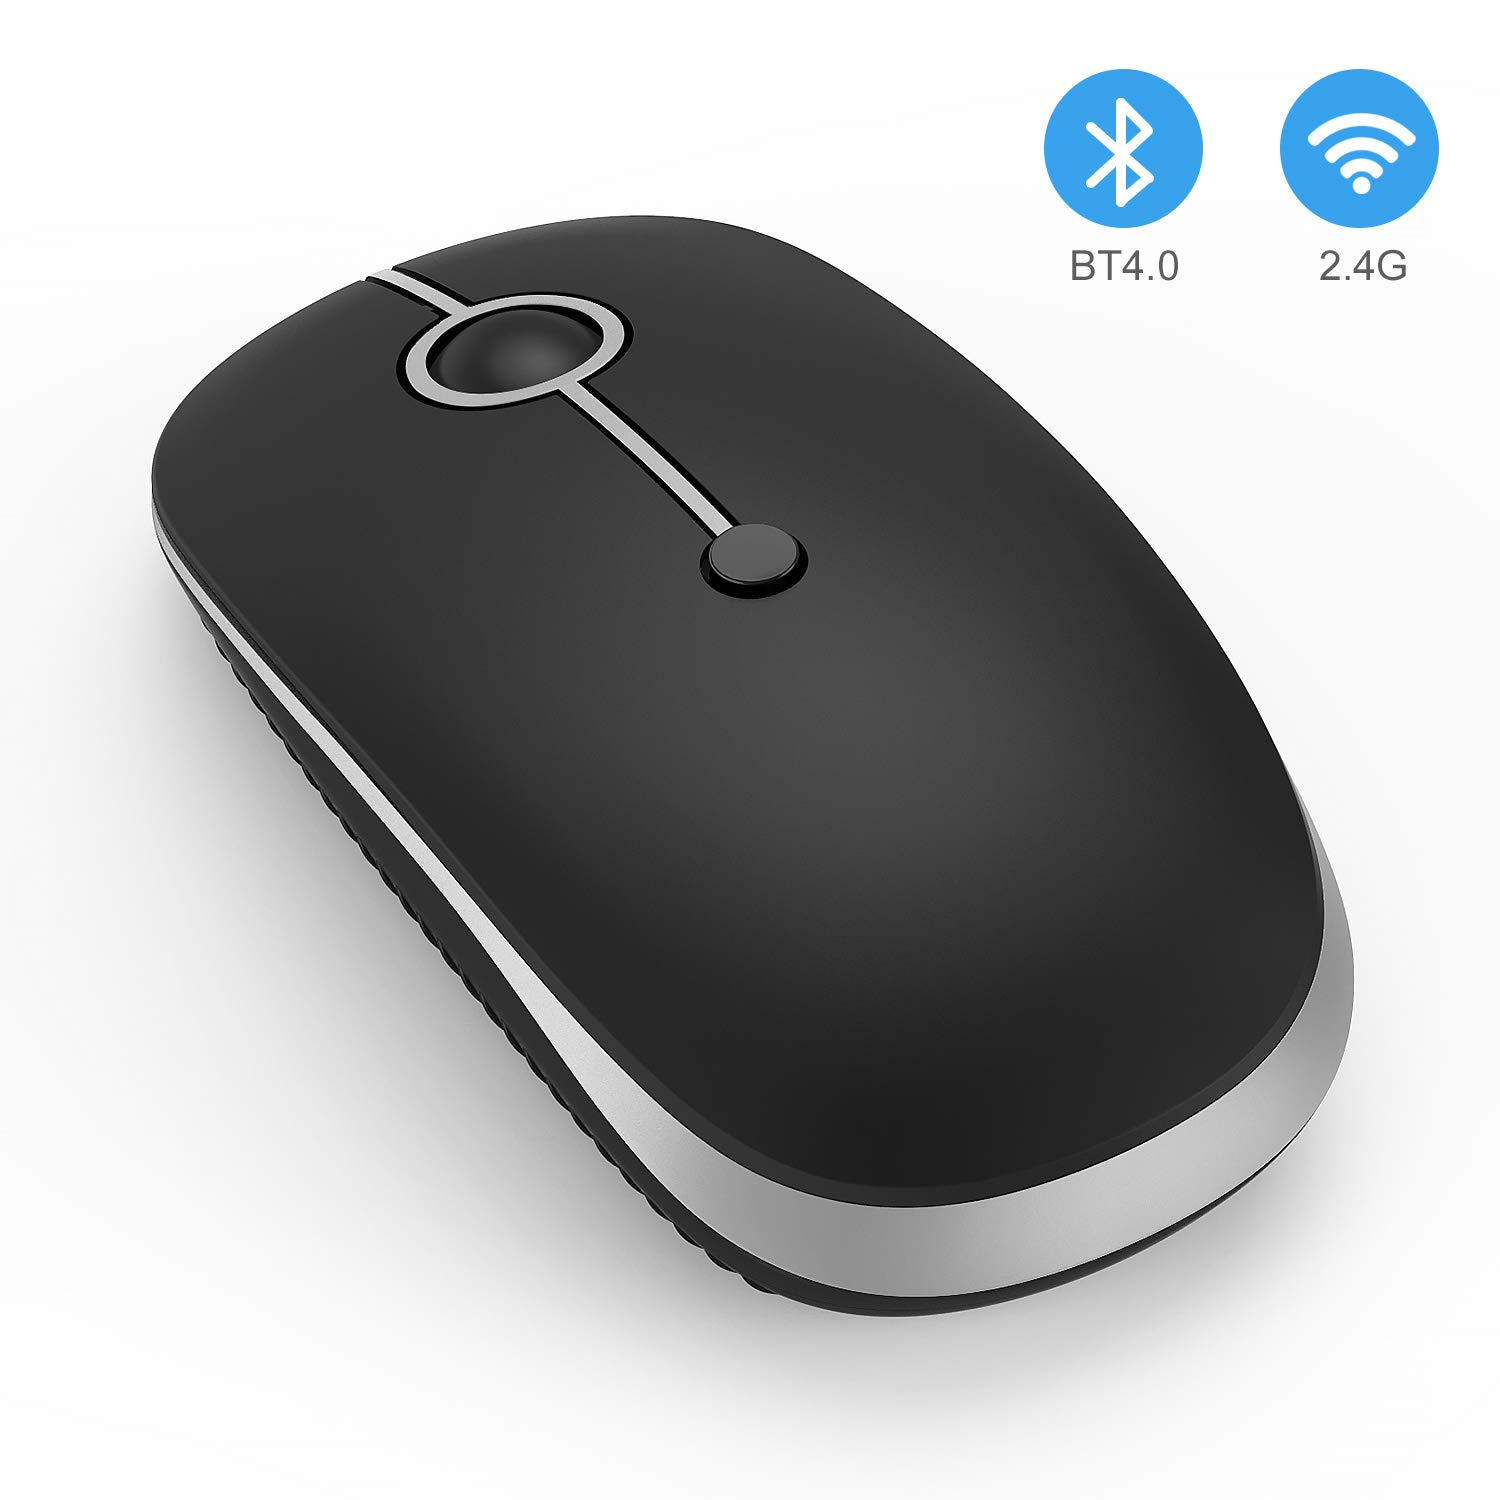 Amazon.com: Wireless Bluetooth Mouse, Jelly Comb Slim Dual Mode 2.4